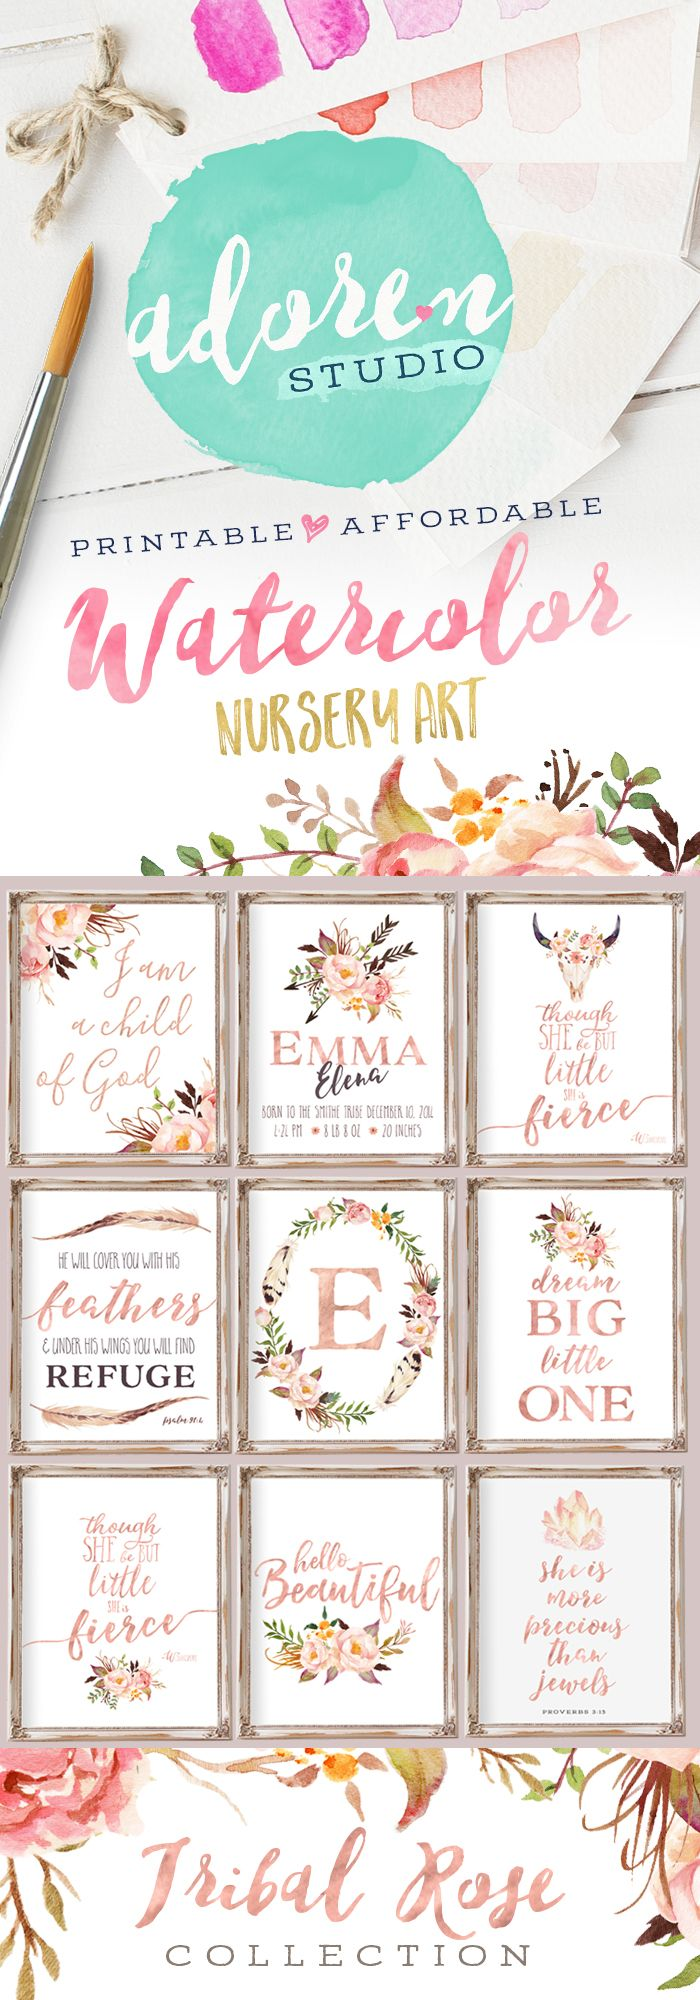 Baby Monogram Wall Decor 17 Best Ideas About Monogram Wall Art On Pinterest Monogram Wall